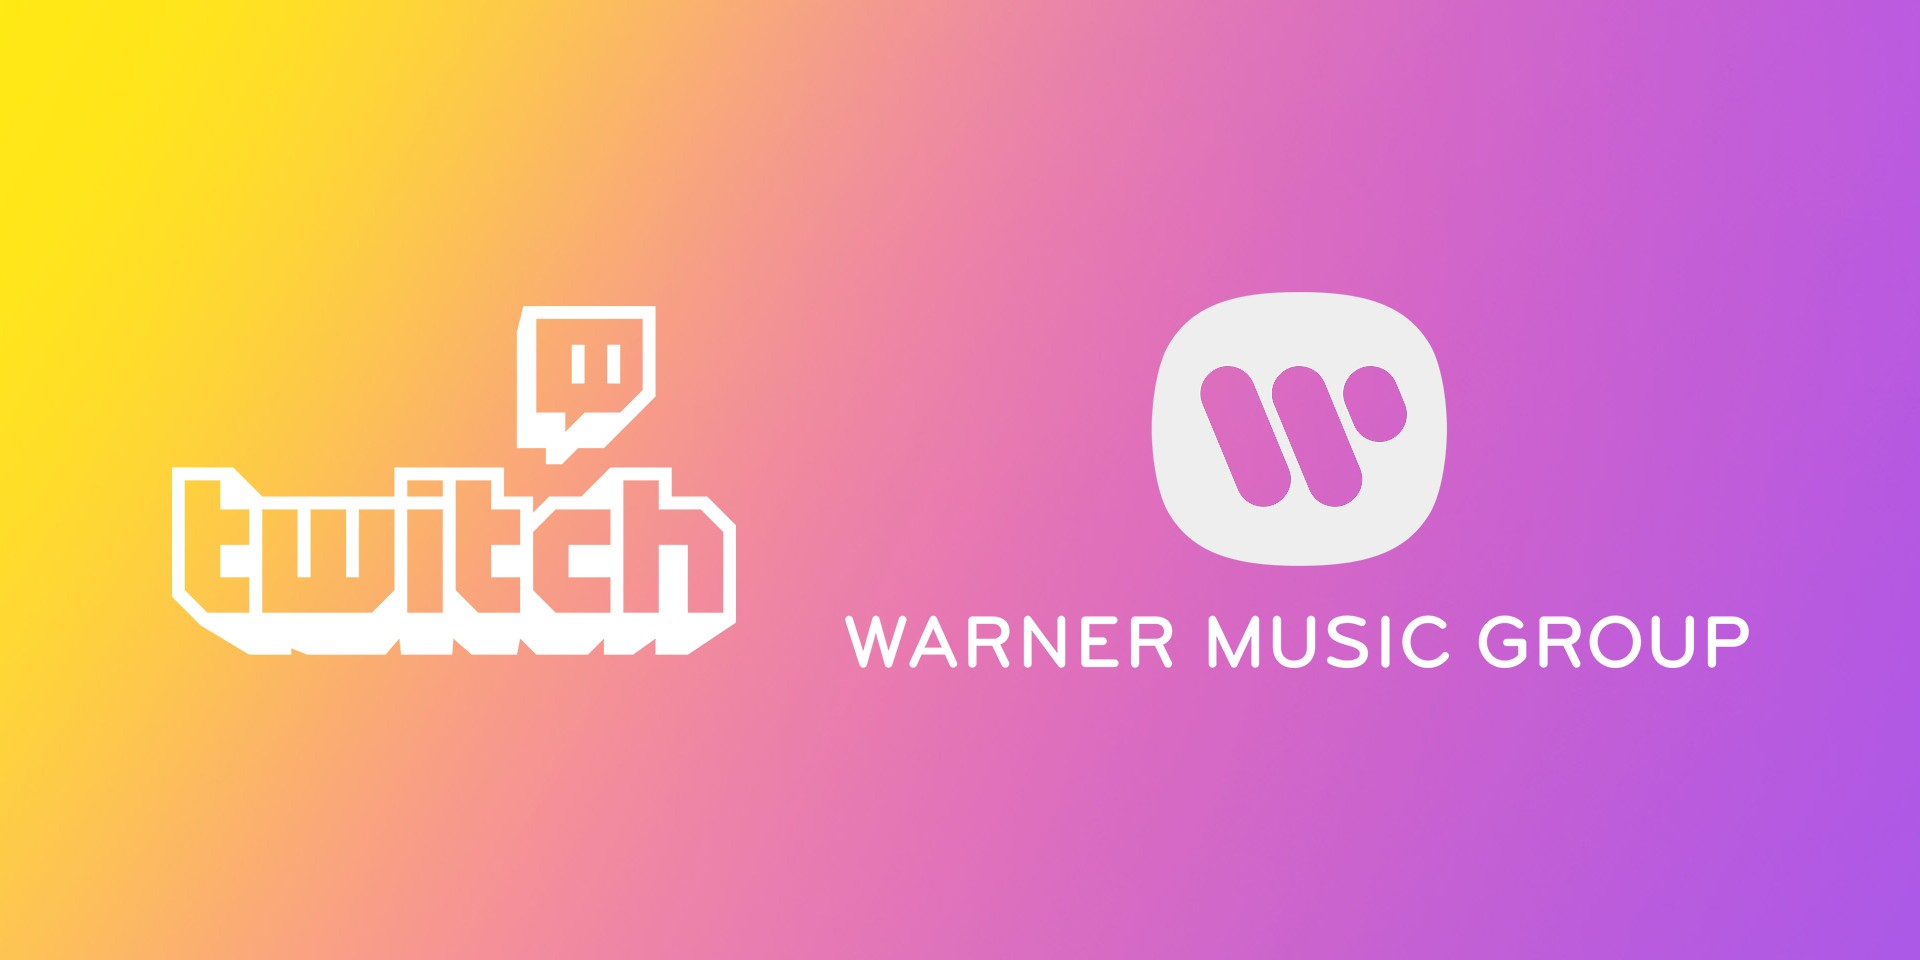 Warner Music Group partners with Twitch for new artist channels and music shows